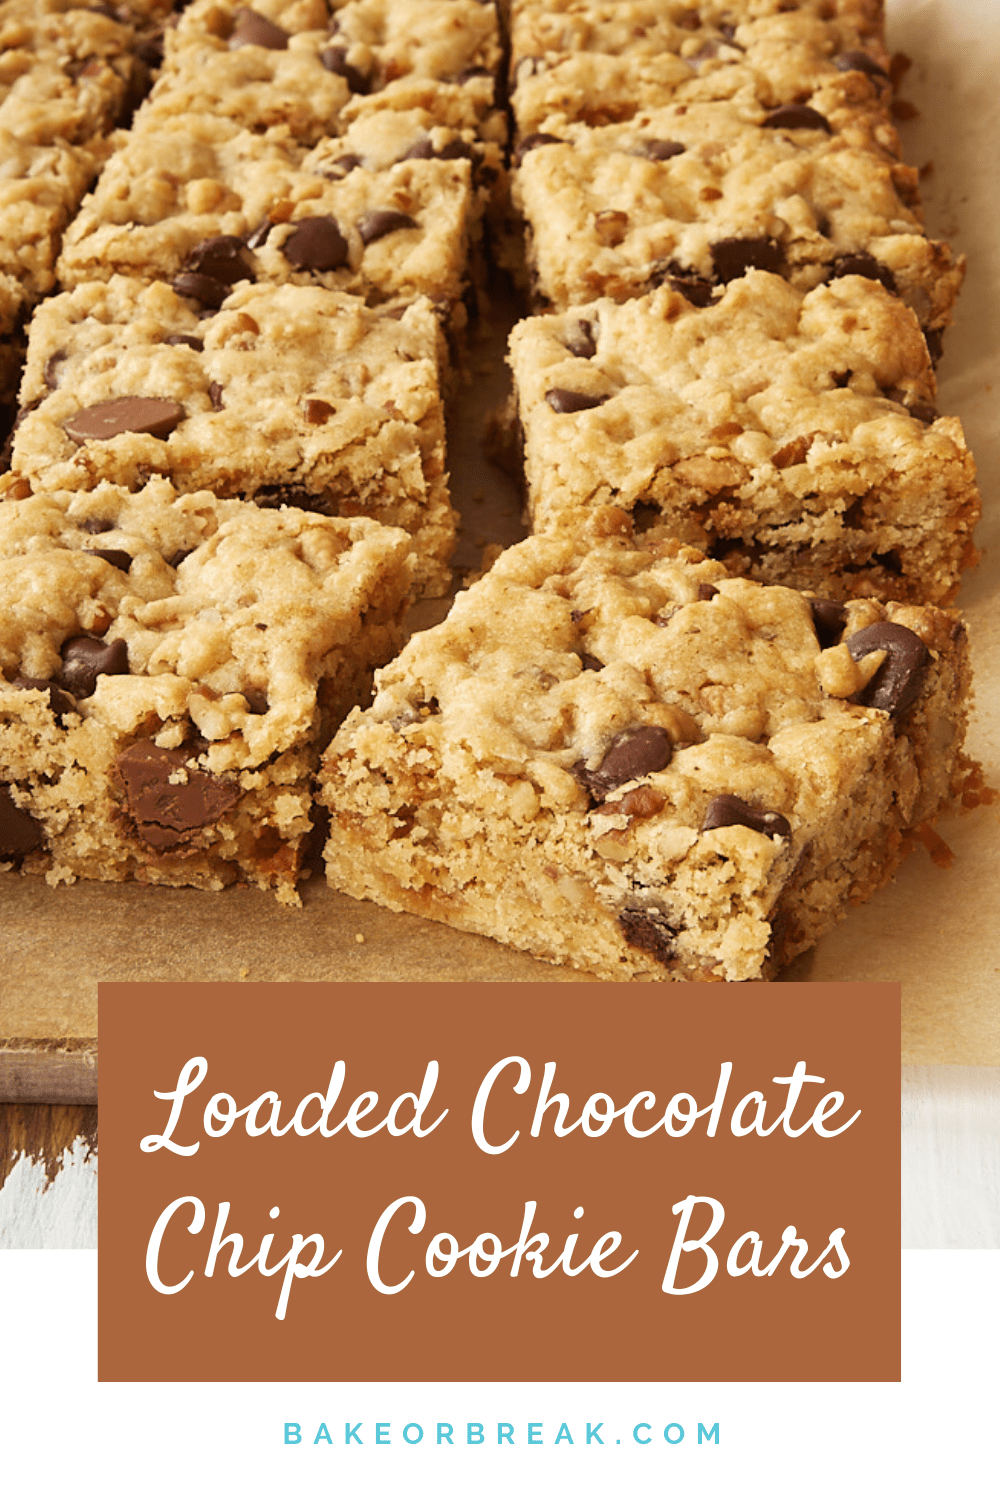 Loaded Chocolate Chip Cookie Bars bakeorbreak.com